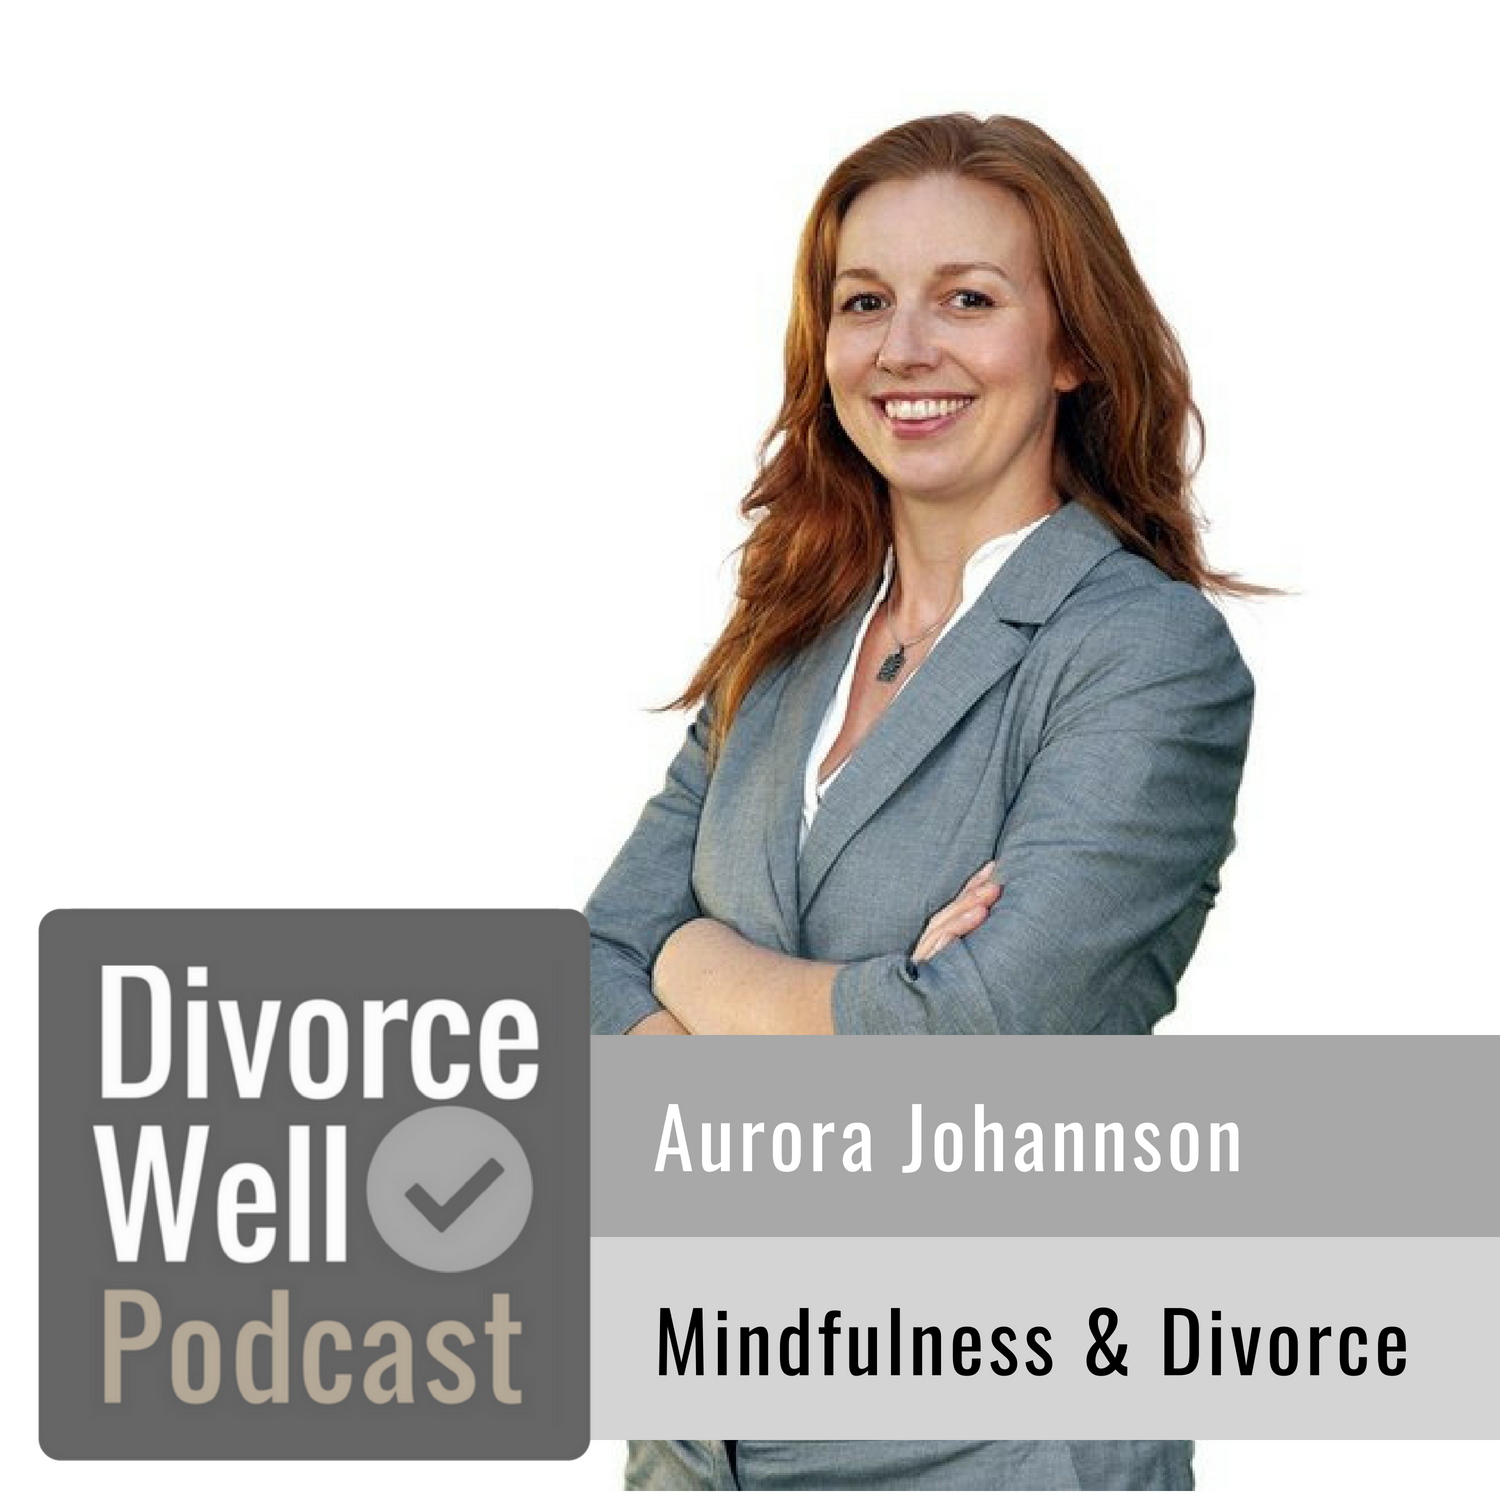 Aurora Johannson on the Divorce Well Podcast about divorce and mindfulness